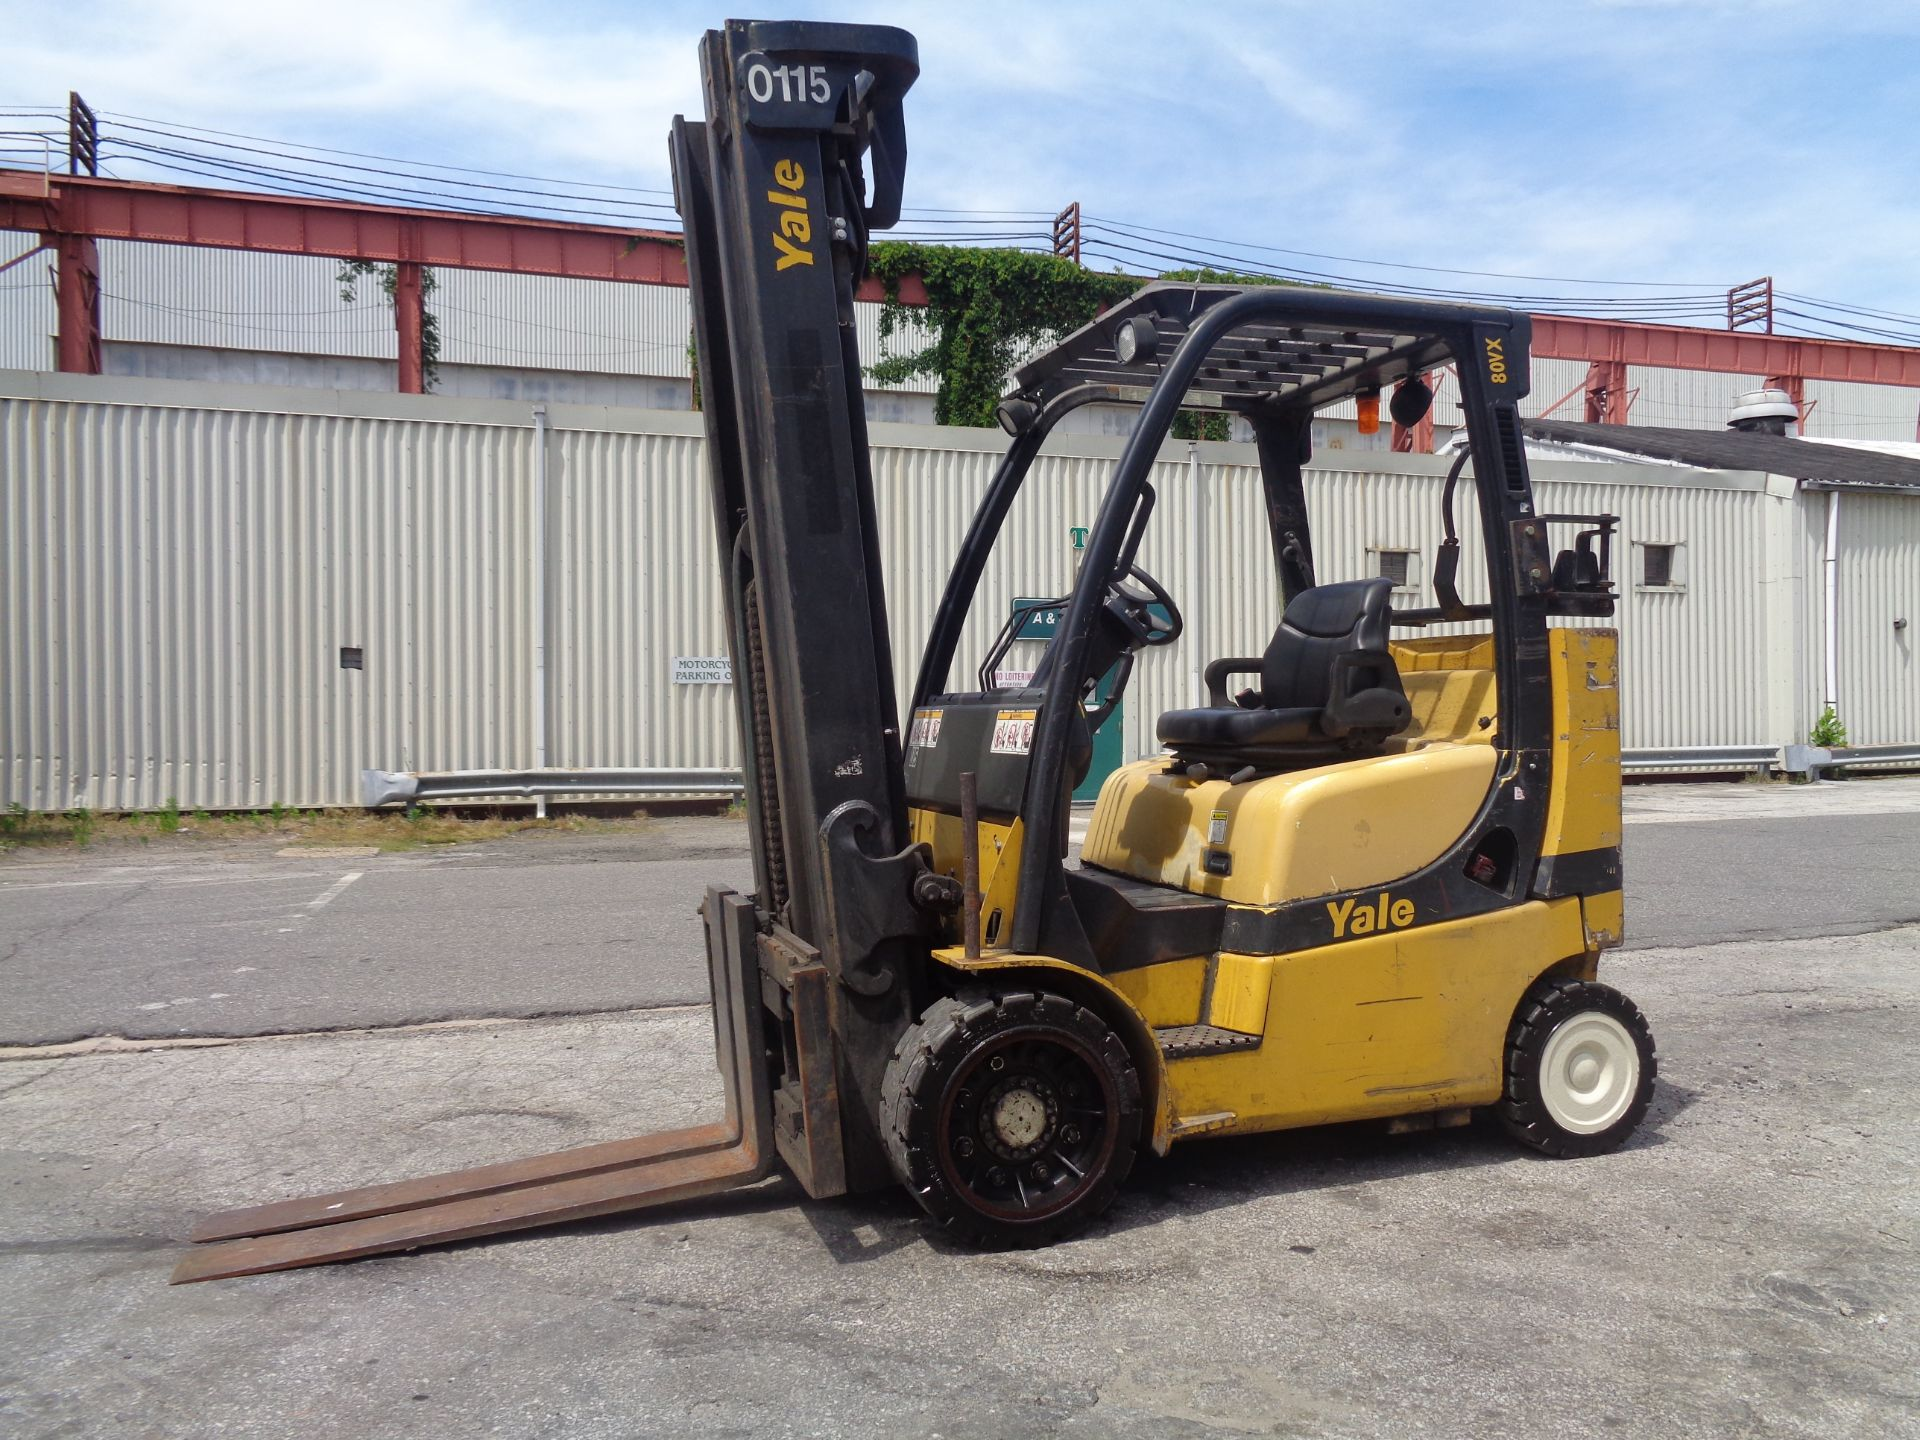 Yale GC080VXNGSE107.6 8,000lb Forklift - Image 9 of 18